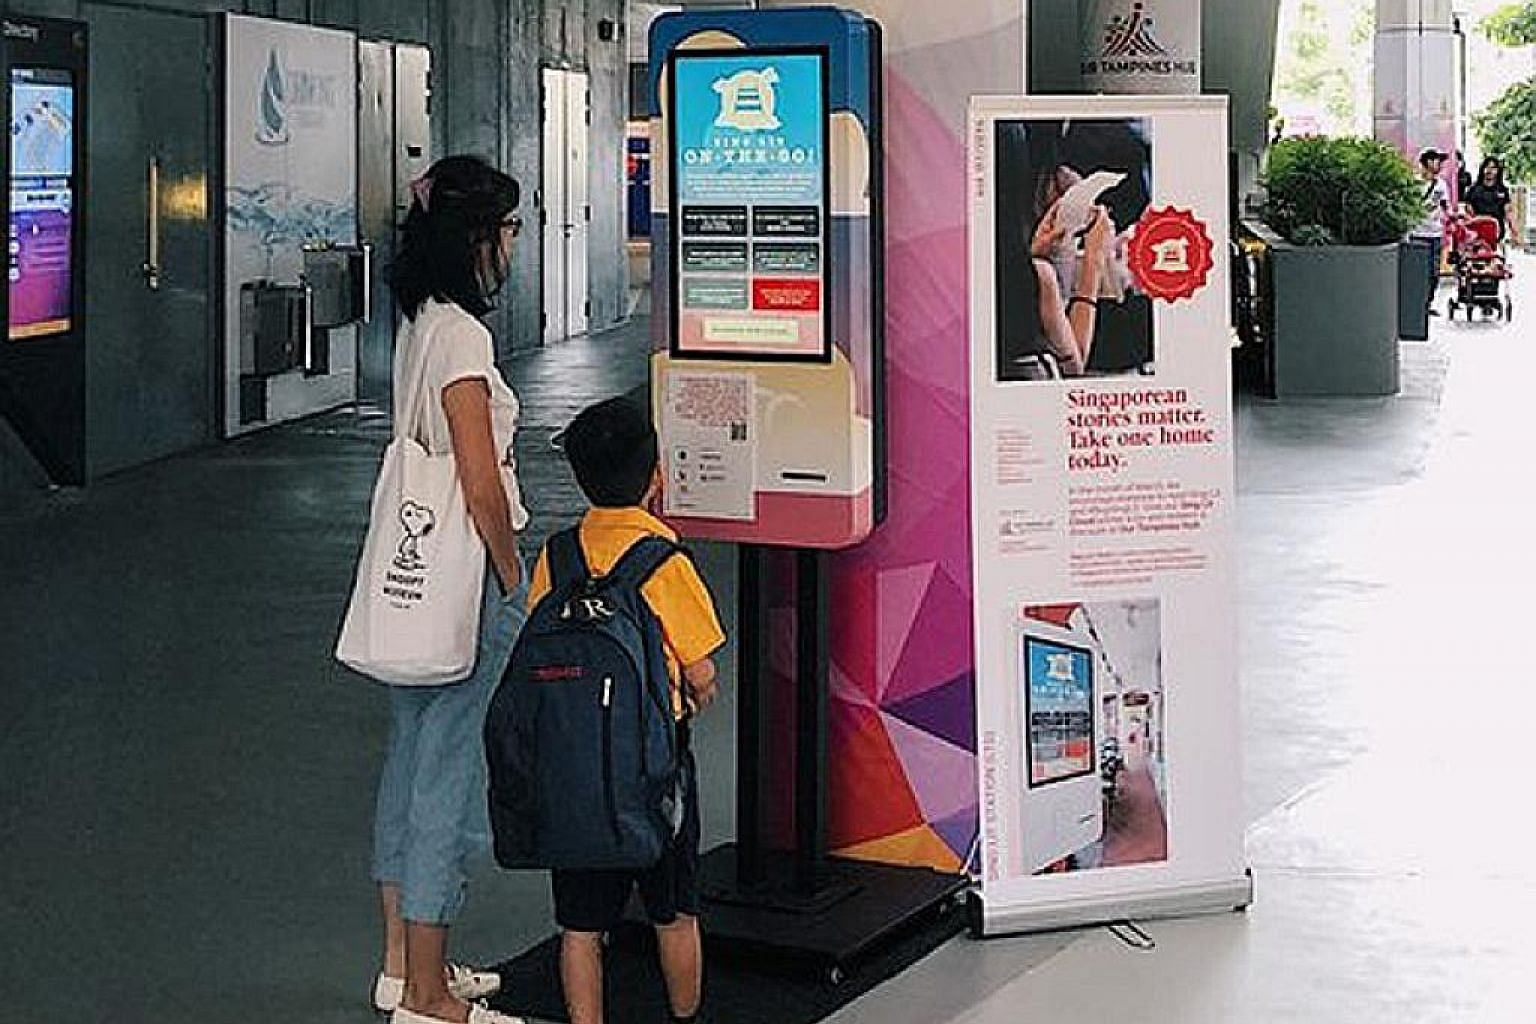 Non-profit literary group Sing Lit Station used the National Arts Council's Seed Grant from 2016 to March this year to support projects such as Sing Lit Cloud, where printers installed at different locations around the island can be used to print wri